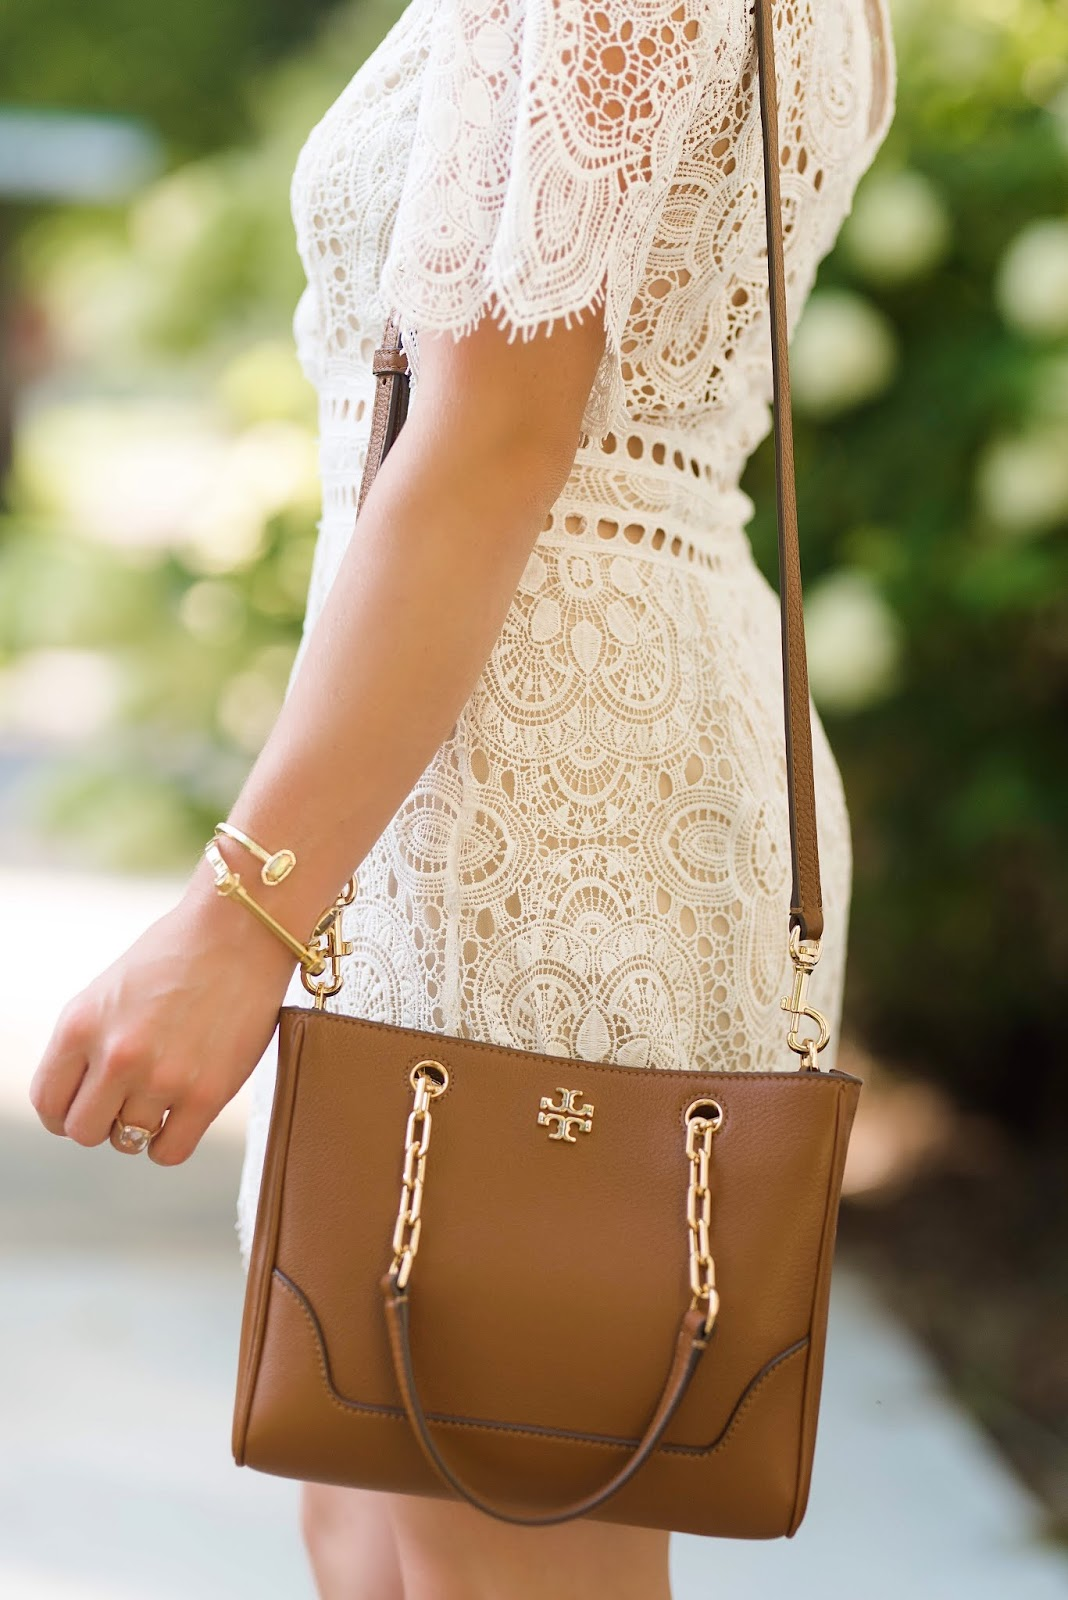 Nordstrom Anniversary Sale Lace Romper and Tory Burch Bag - Something Delightful